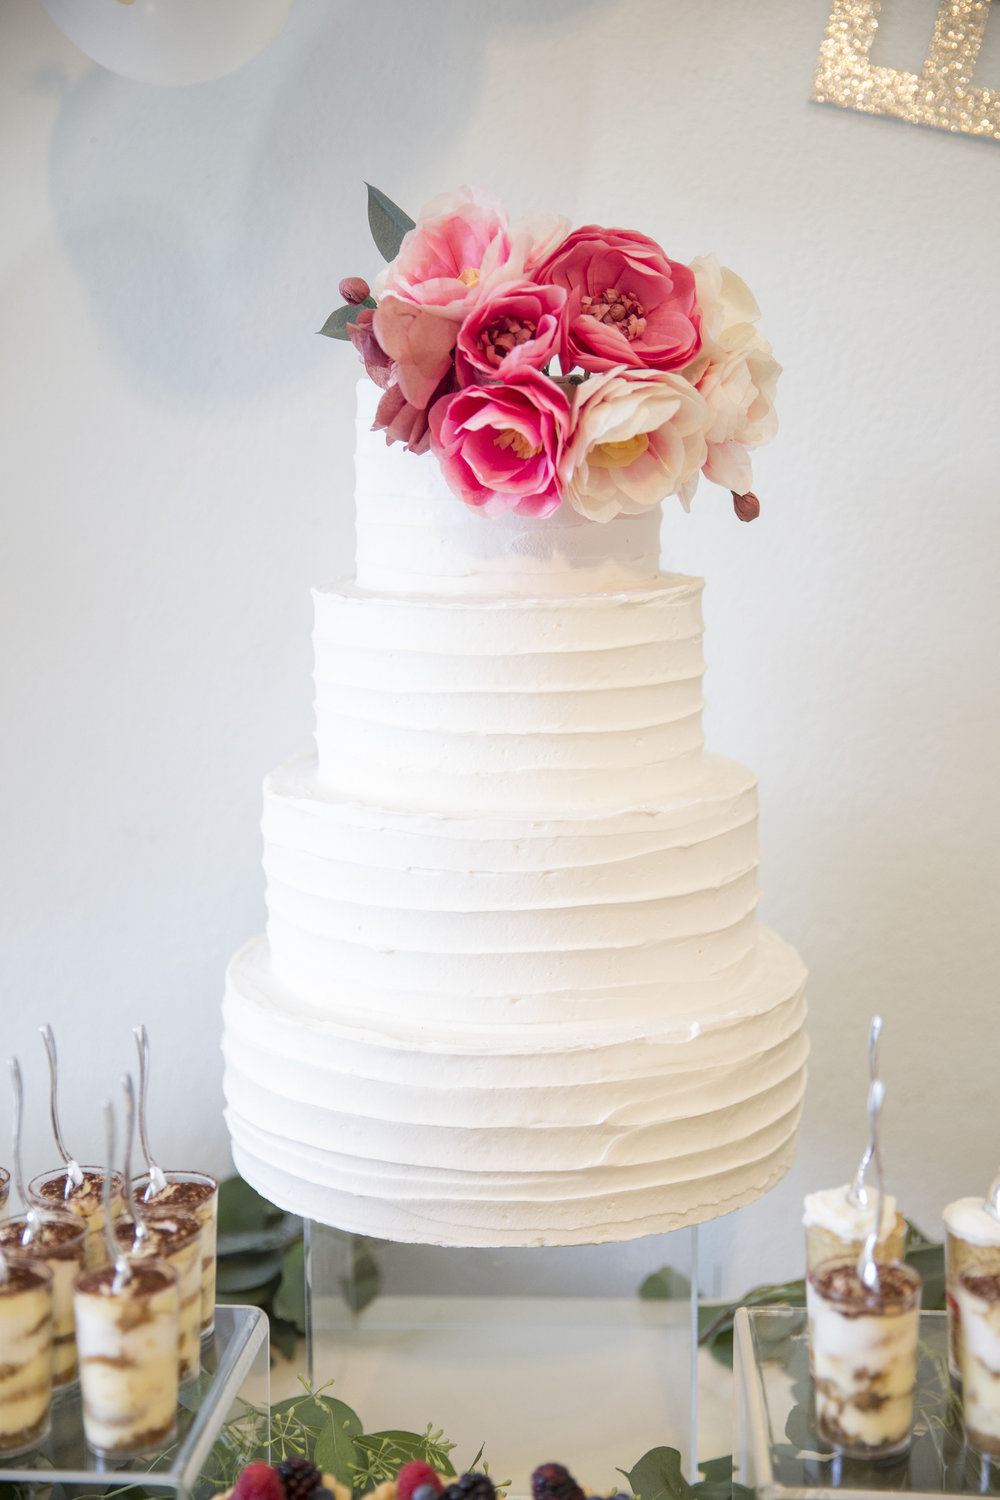 www.santabarbaraweddingstyle | dessert buffet | Dessert ideas | wedding cake | lele patisserie | Kristen Beinke Photography